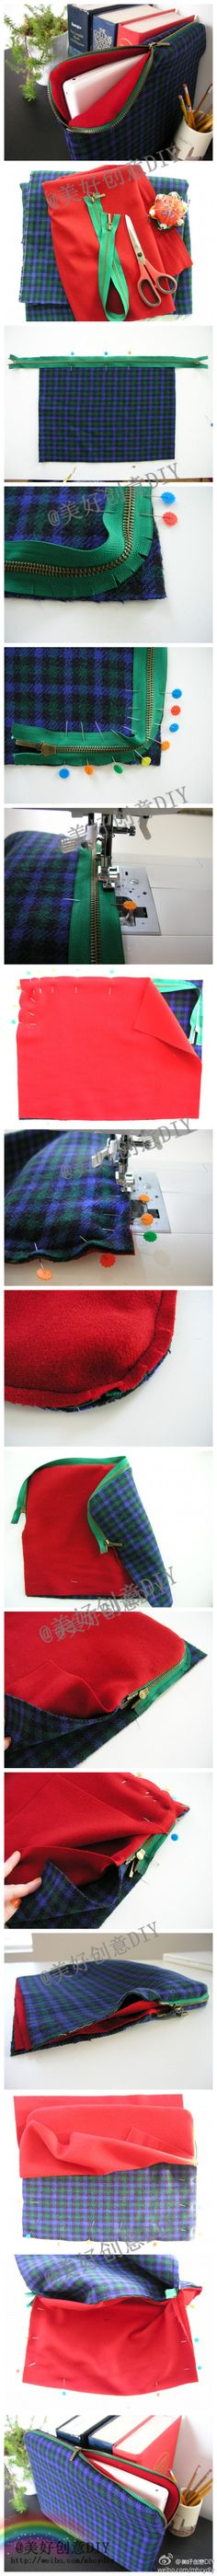 tutorial pc case or exam holder or document holder. also tablet case DIY sewing… Sewing Hacks, Sewing Tutorials, Sewing Patterns, Fabric Crafts, Sewing Crafts, Sewing Projects, Sewing Diy, Techniques Couture, Sewing Techniques